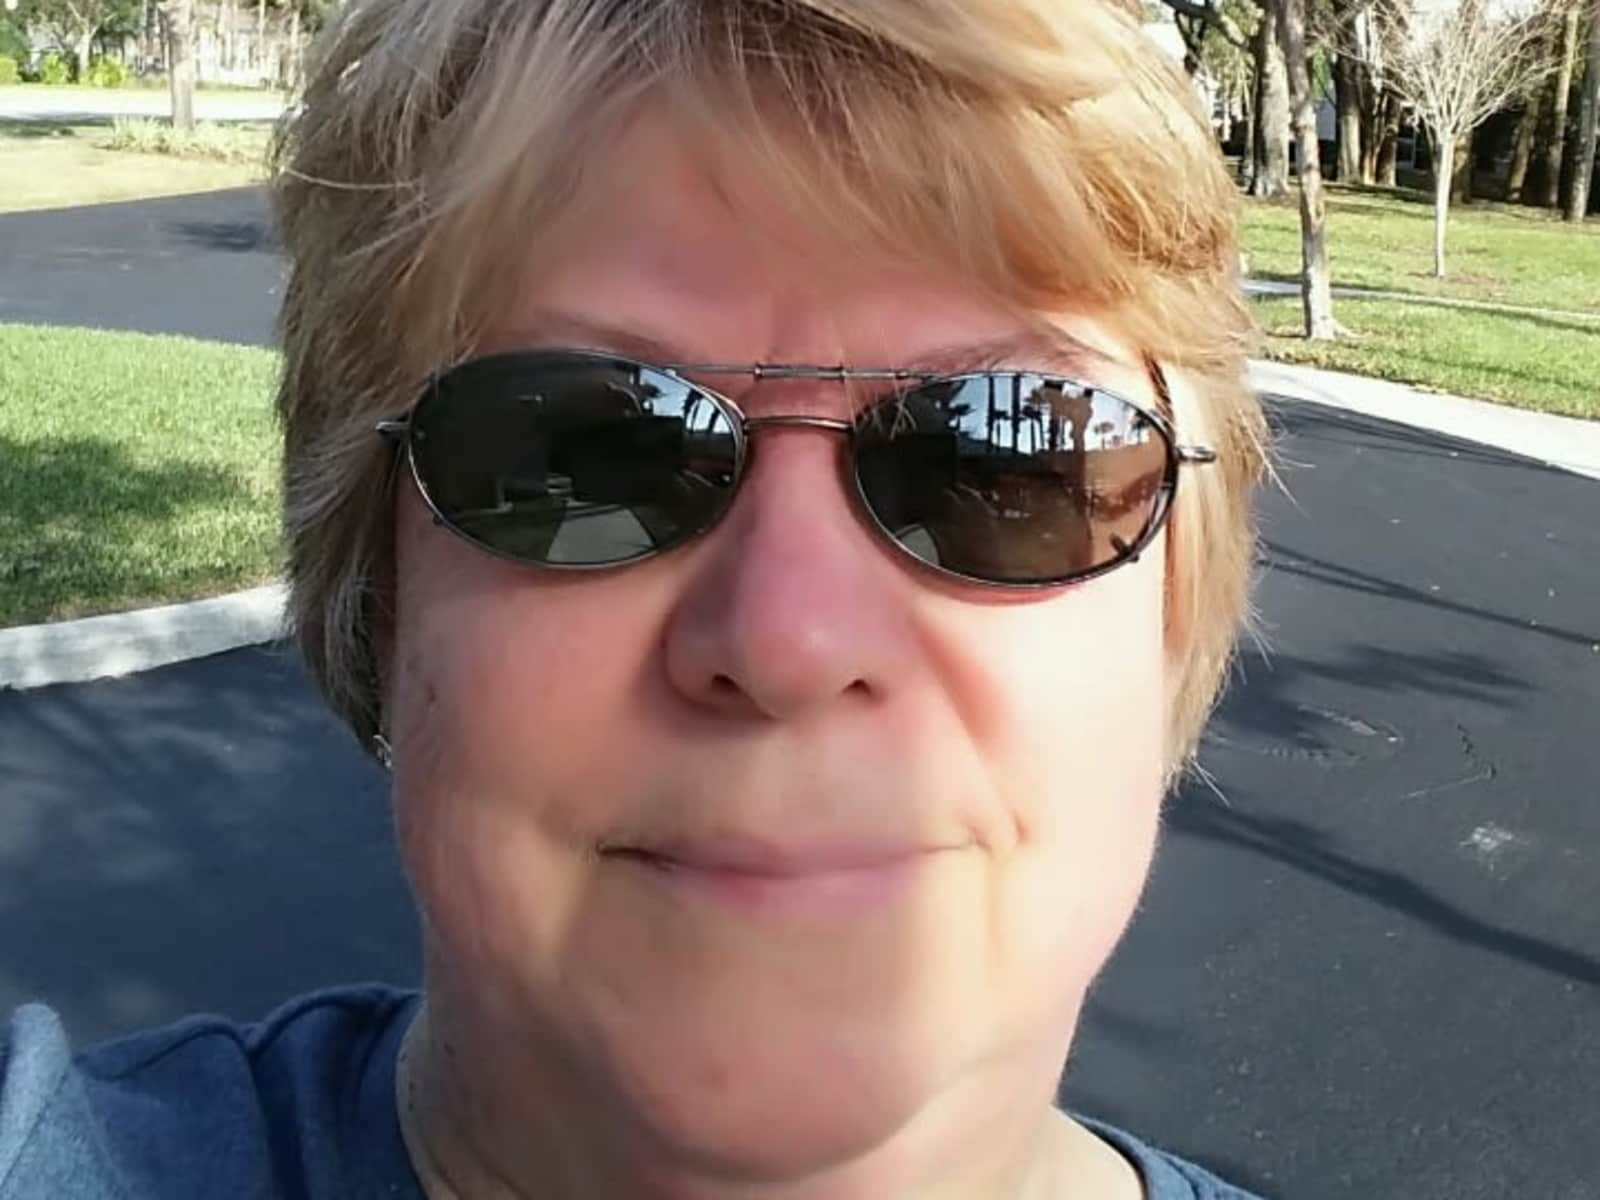 Vicki from Parsippany, New Jersey, United States